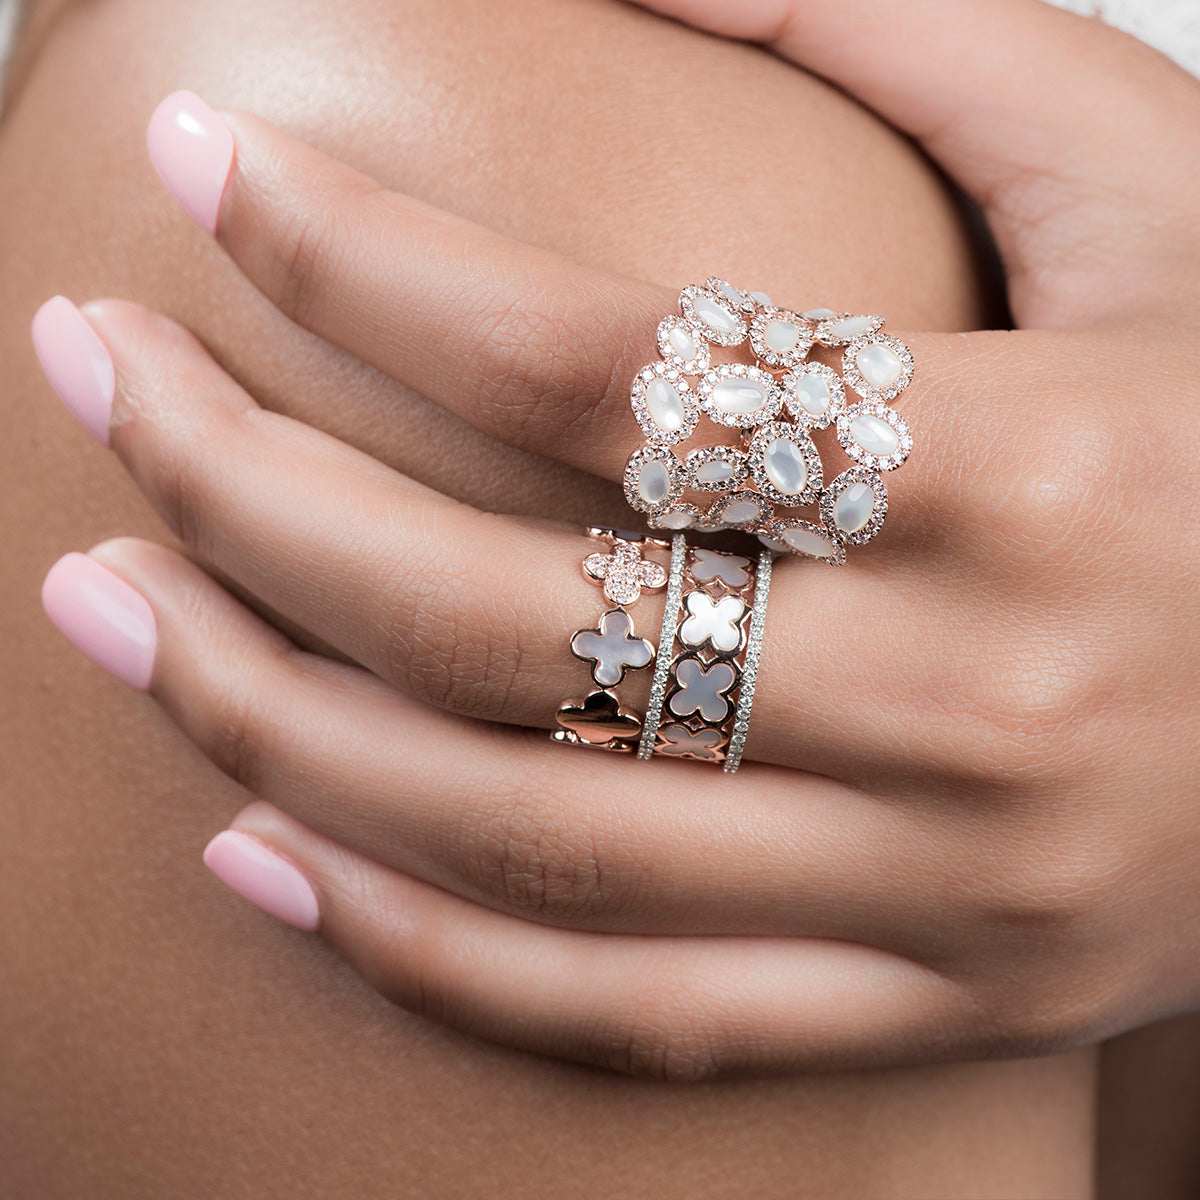 Diamond And Mother Of Pearl Cocktail Ring - estellacollection